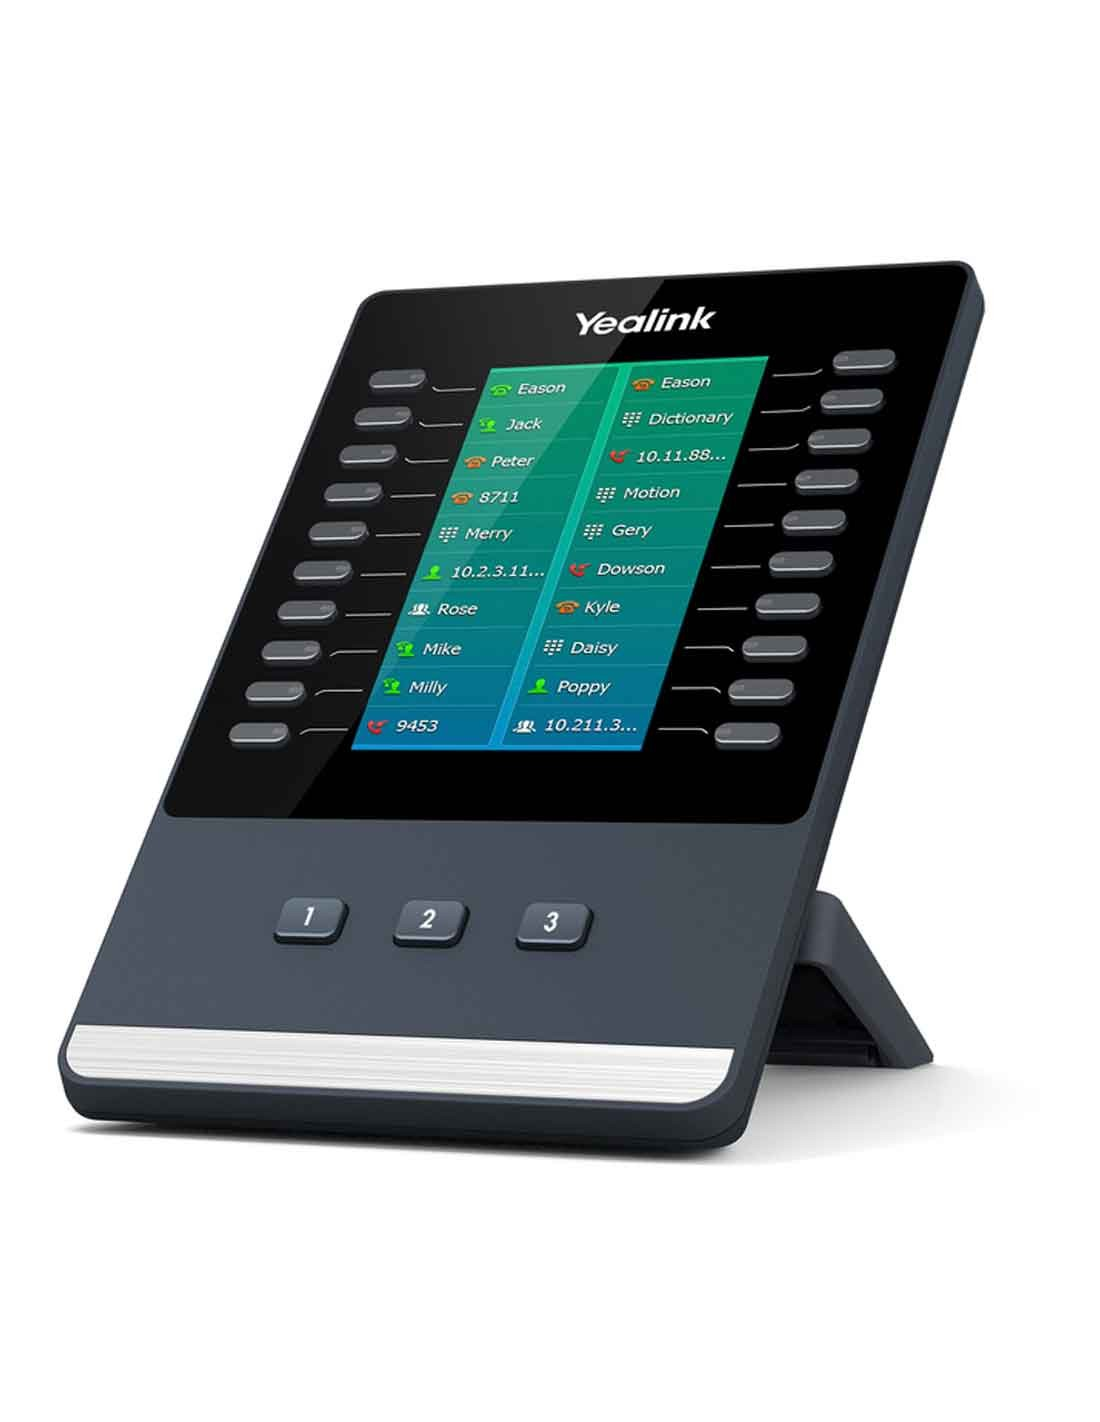 Yealink EXP50 Expansion Module at a cheap price and free delivery in Dubai